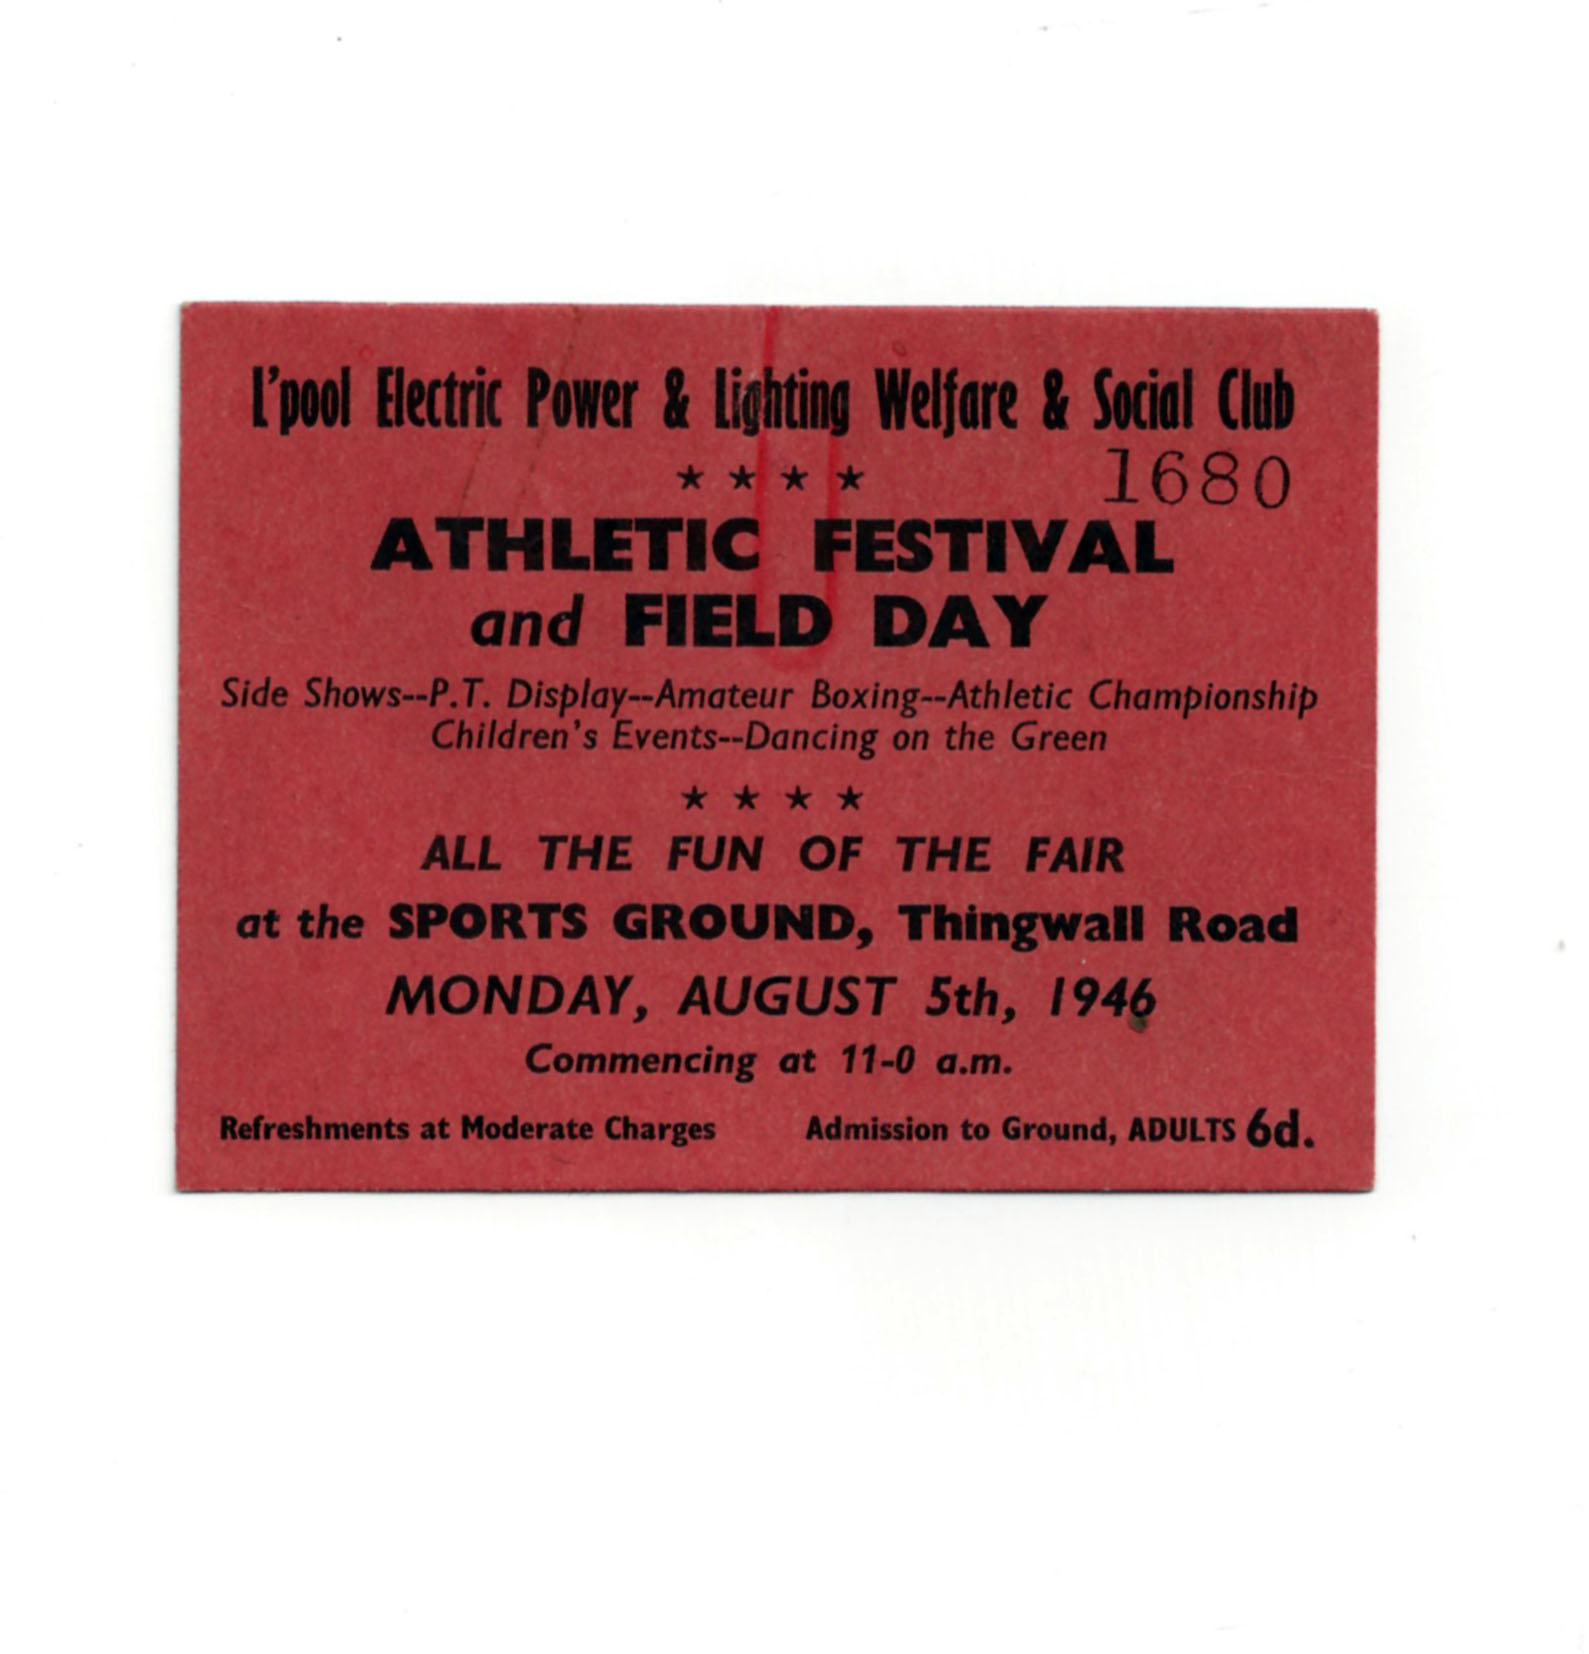 AthleticFestival and Field Day 1946